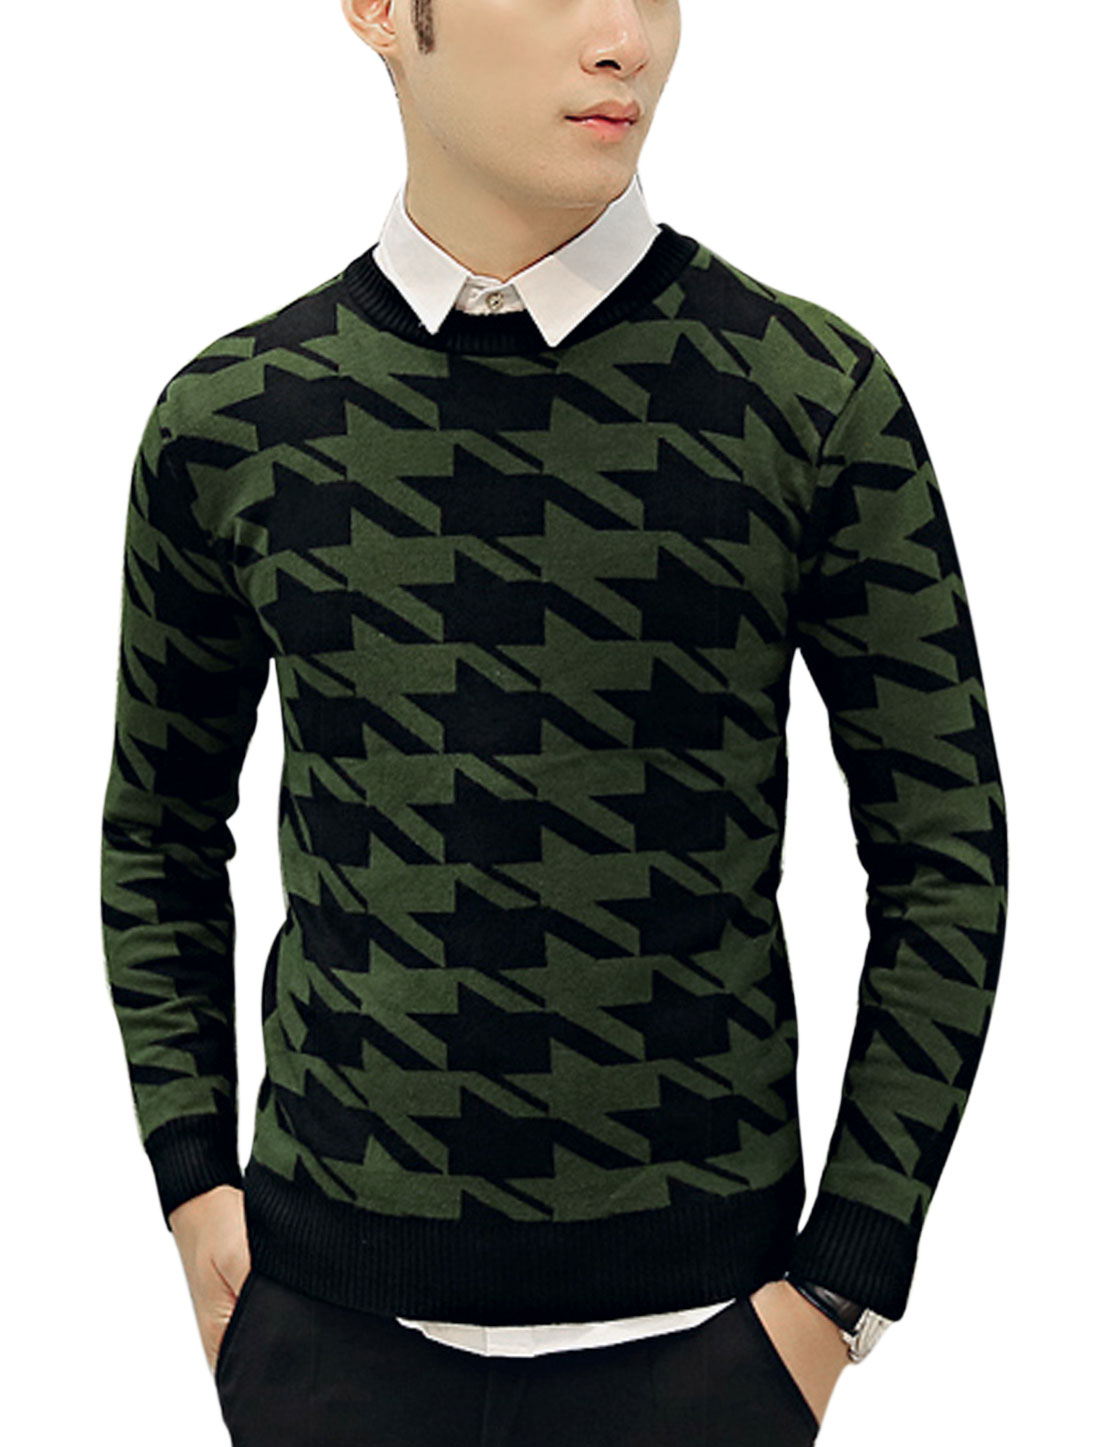 Houndstooth Slipover Slim Fit Army Green Black Knit Shirt for Man S